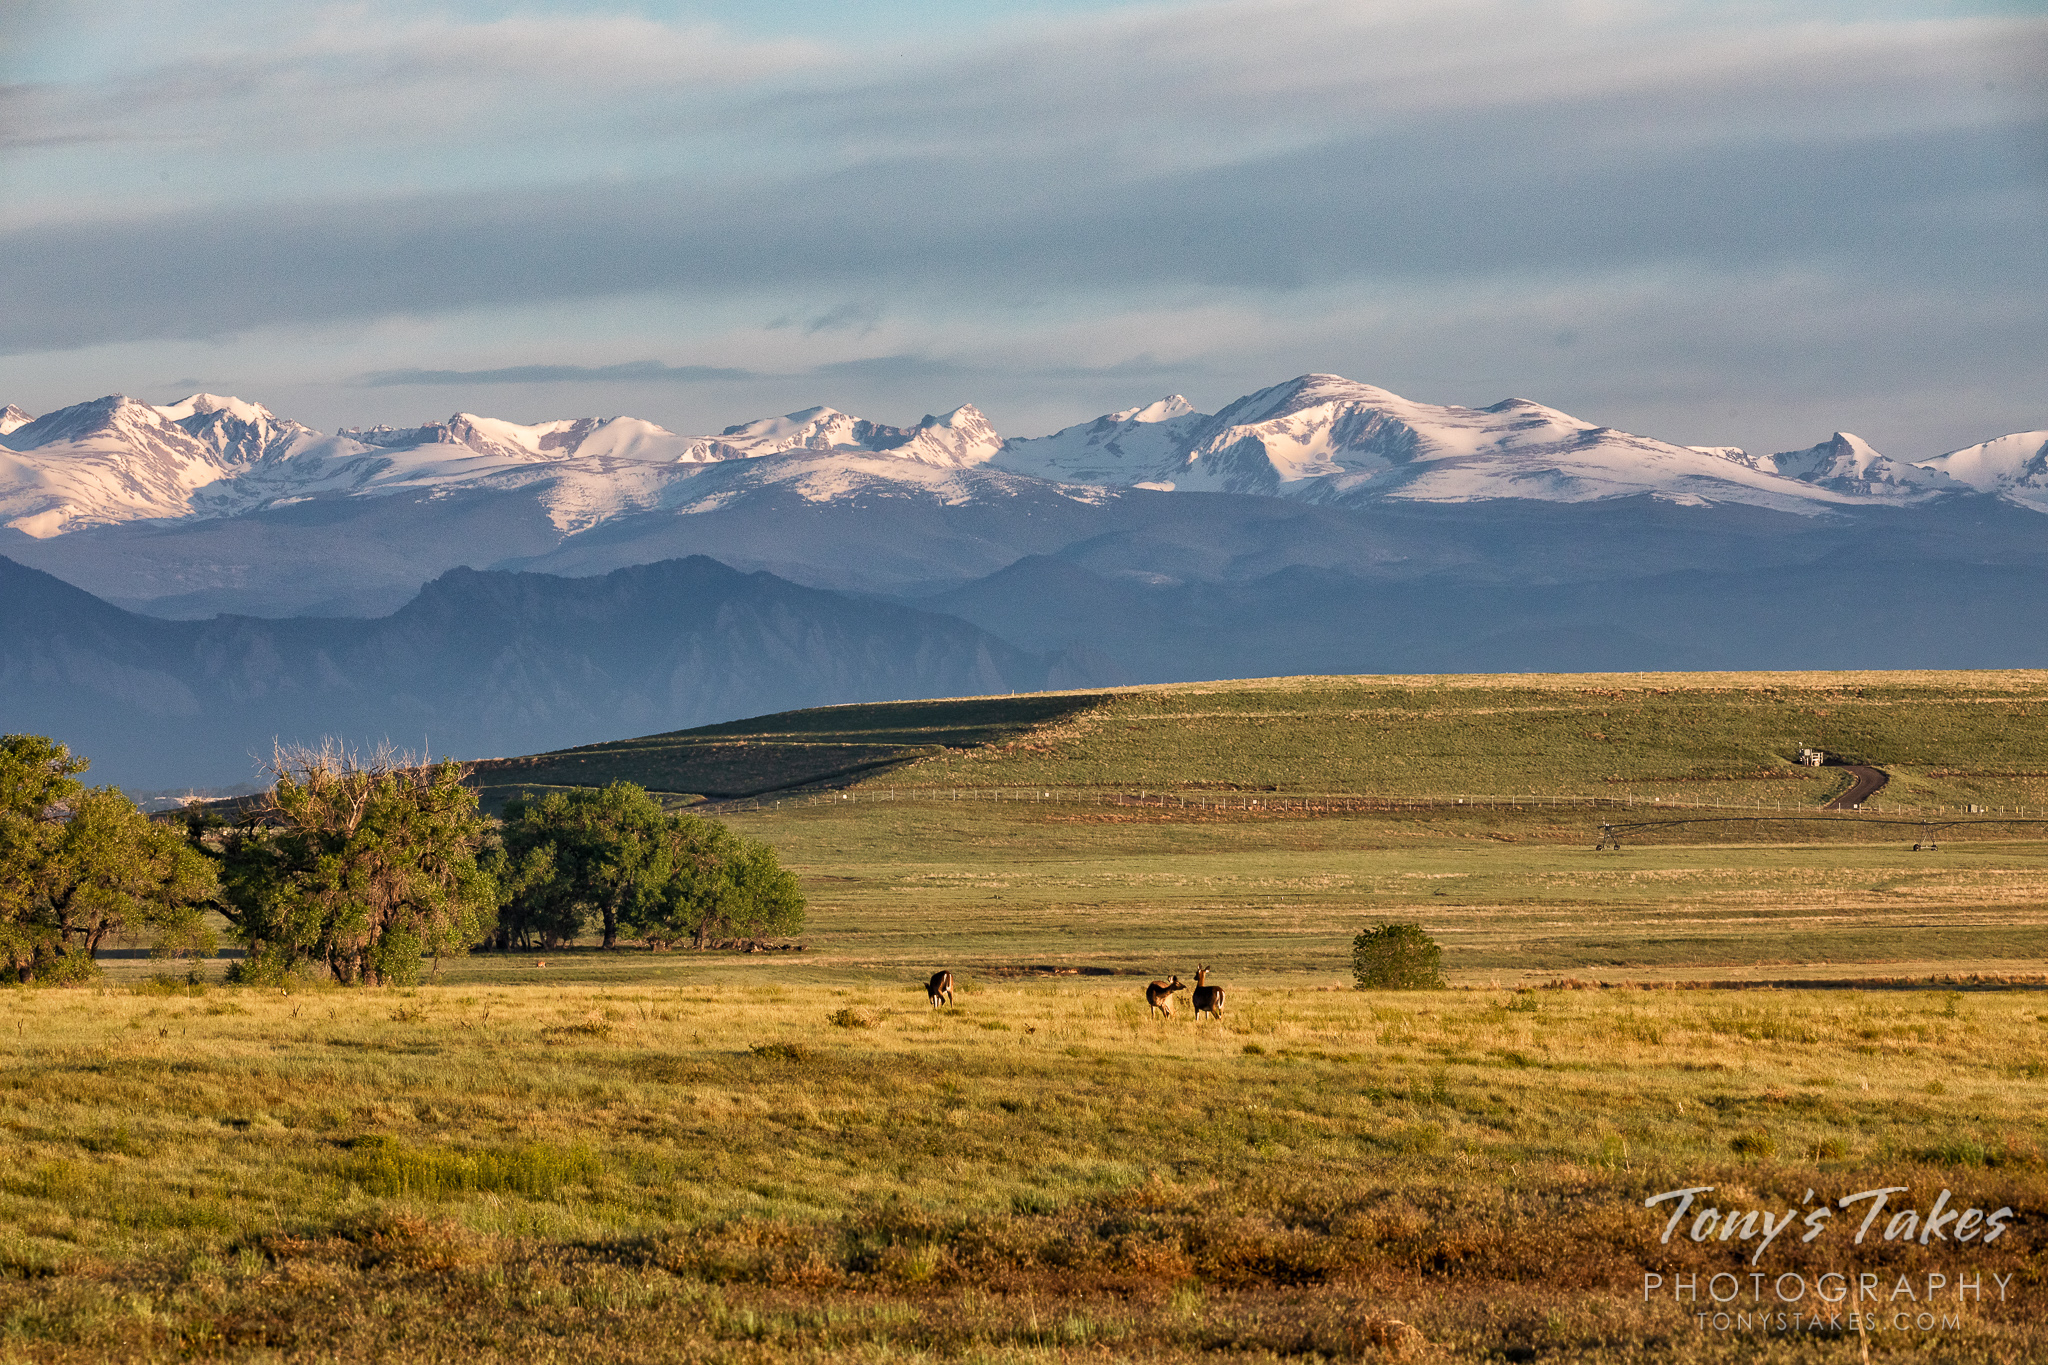 The golden plains and snow-capped mountains